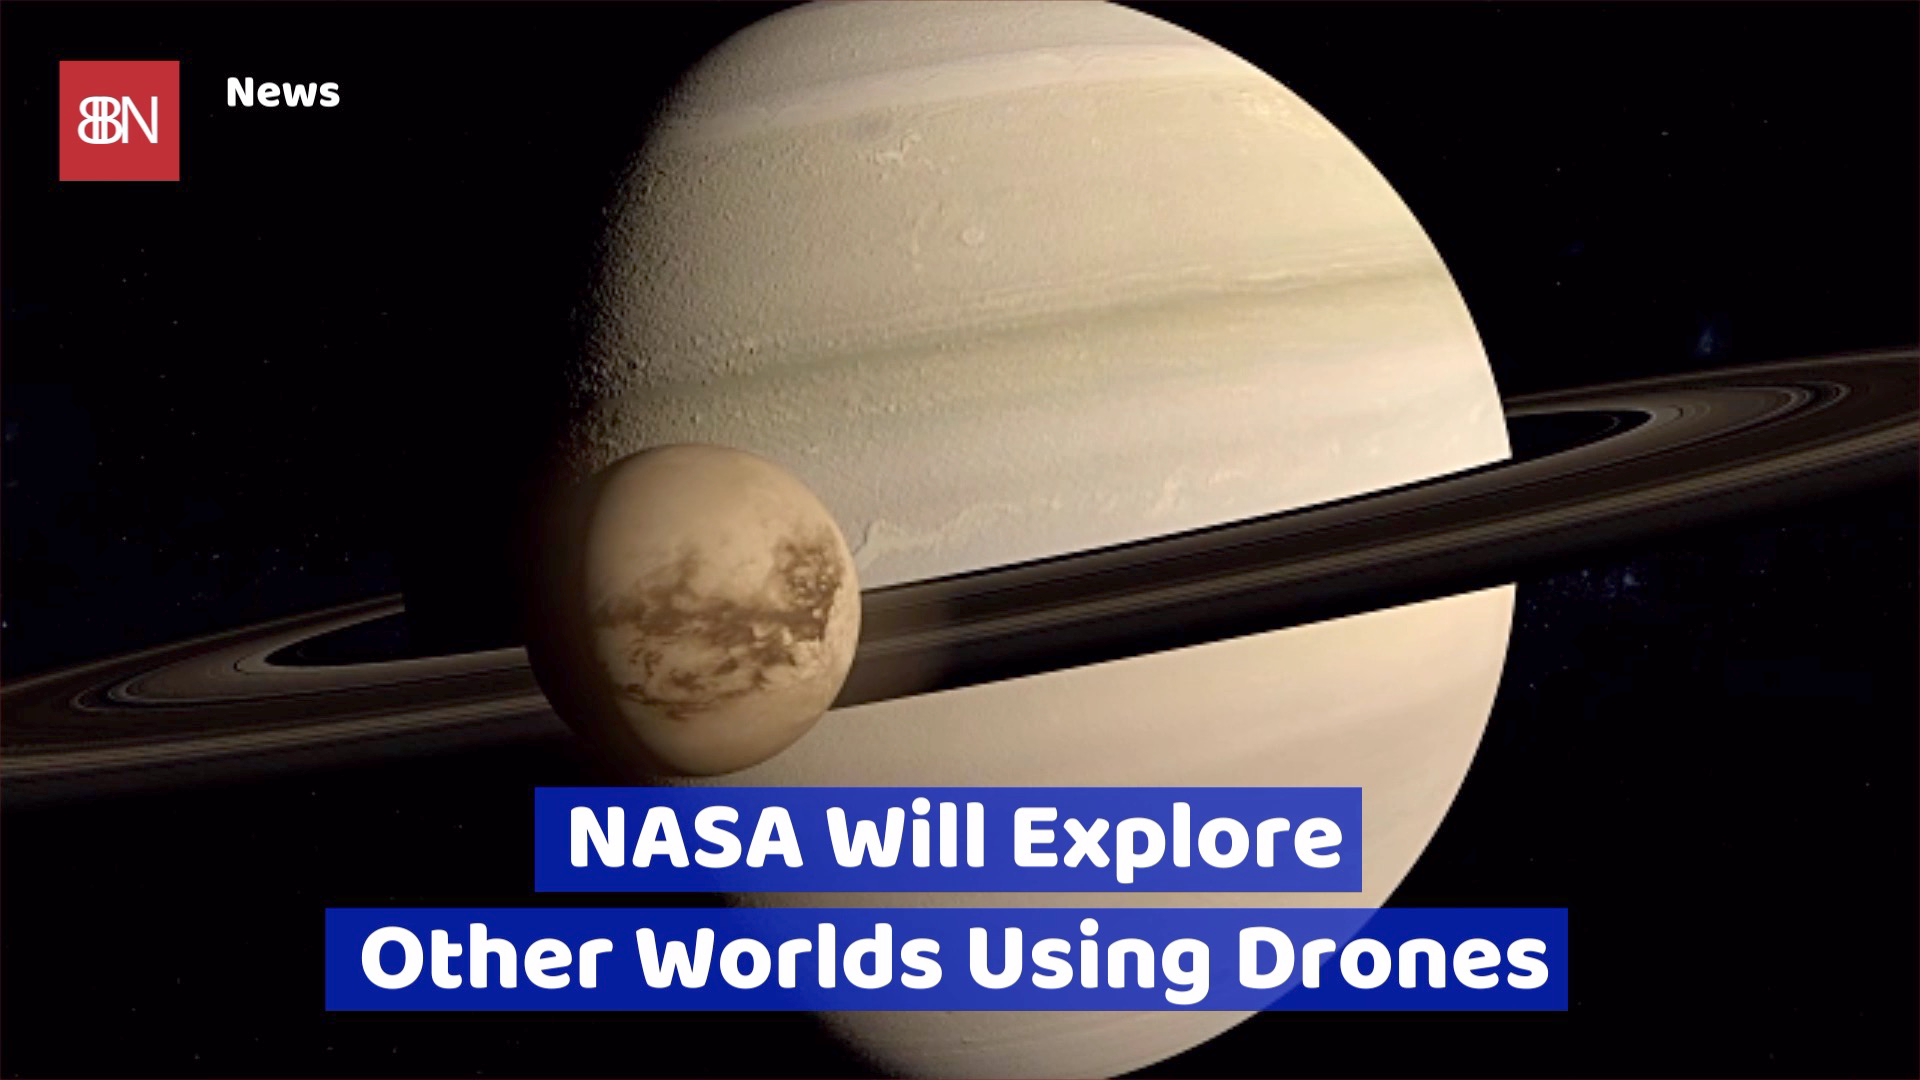 NASA's Work With Drone Technology